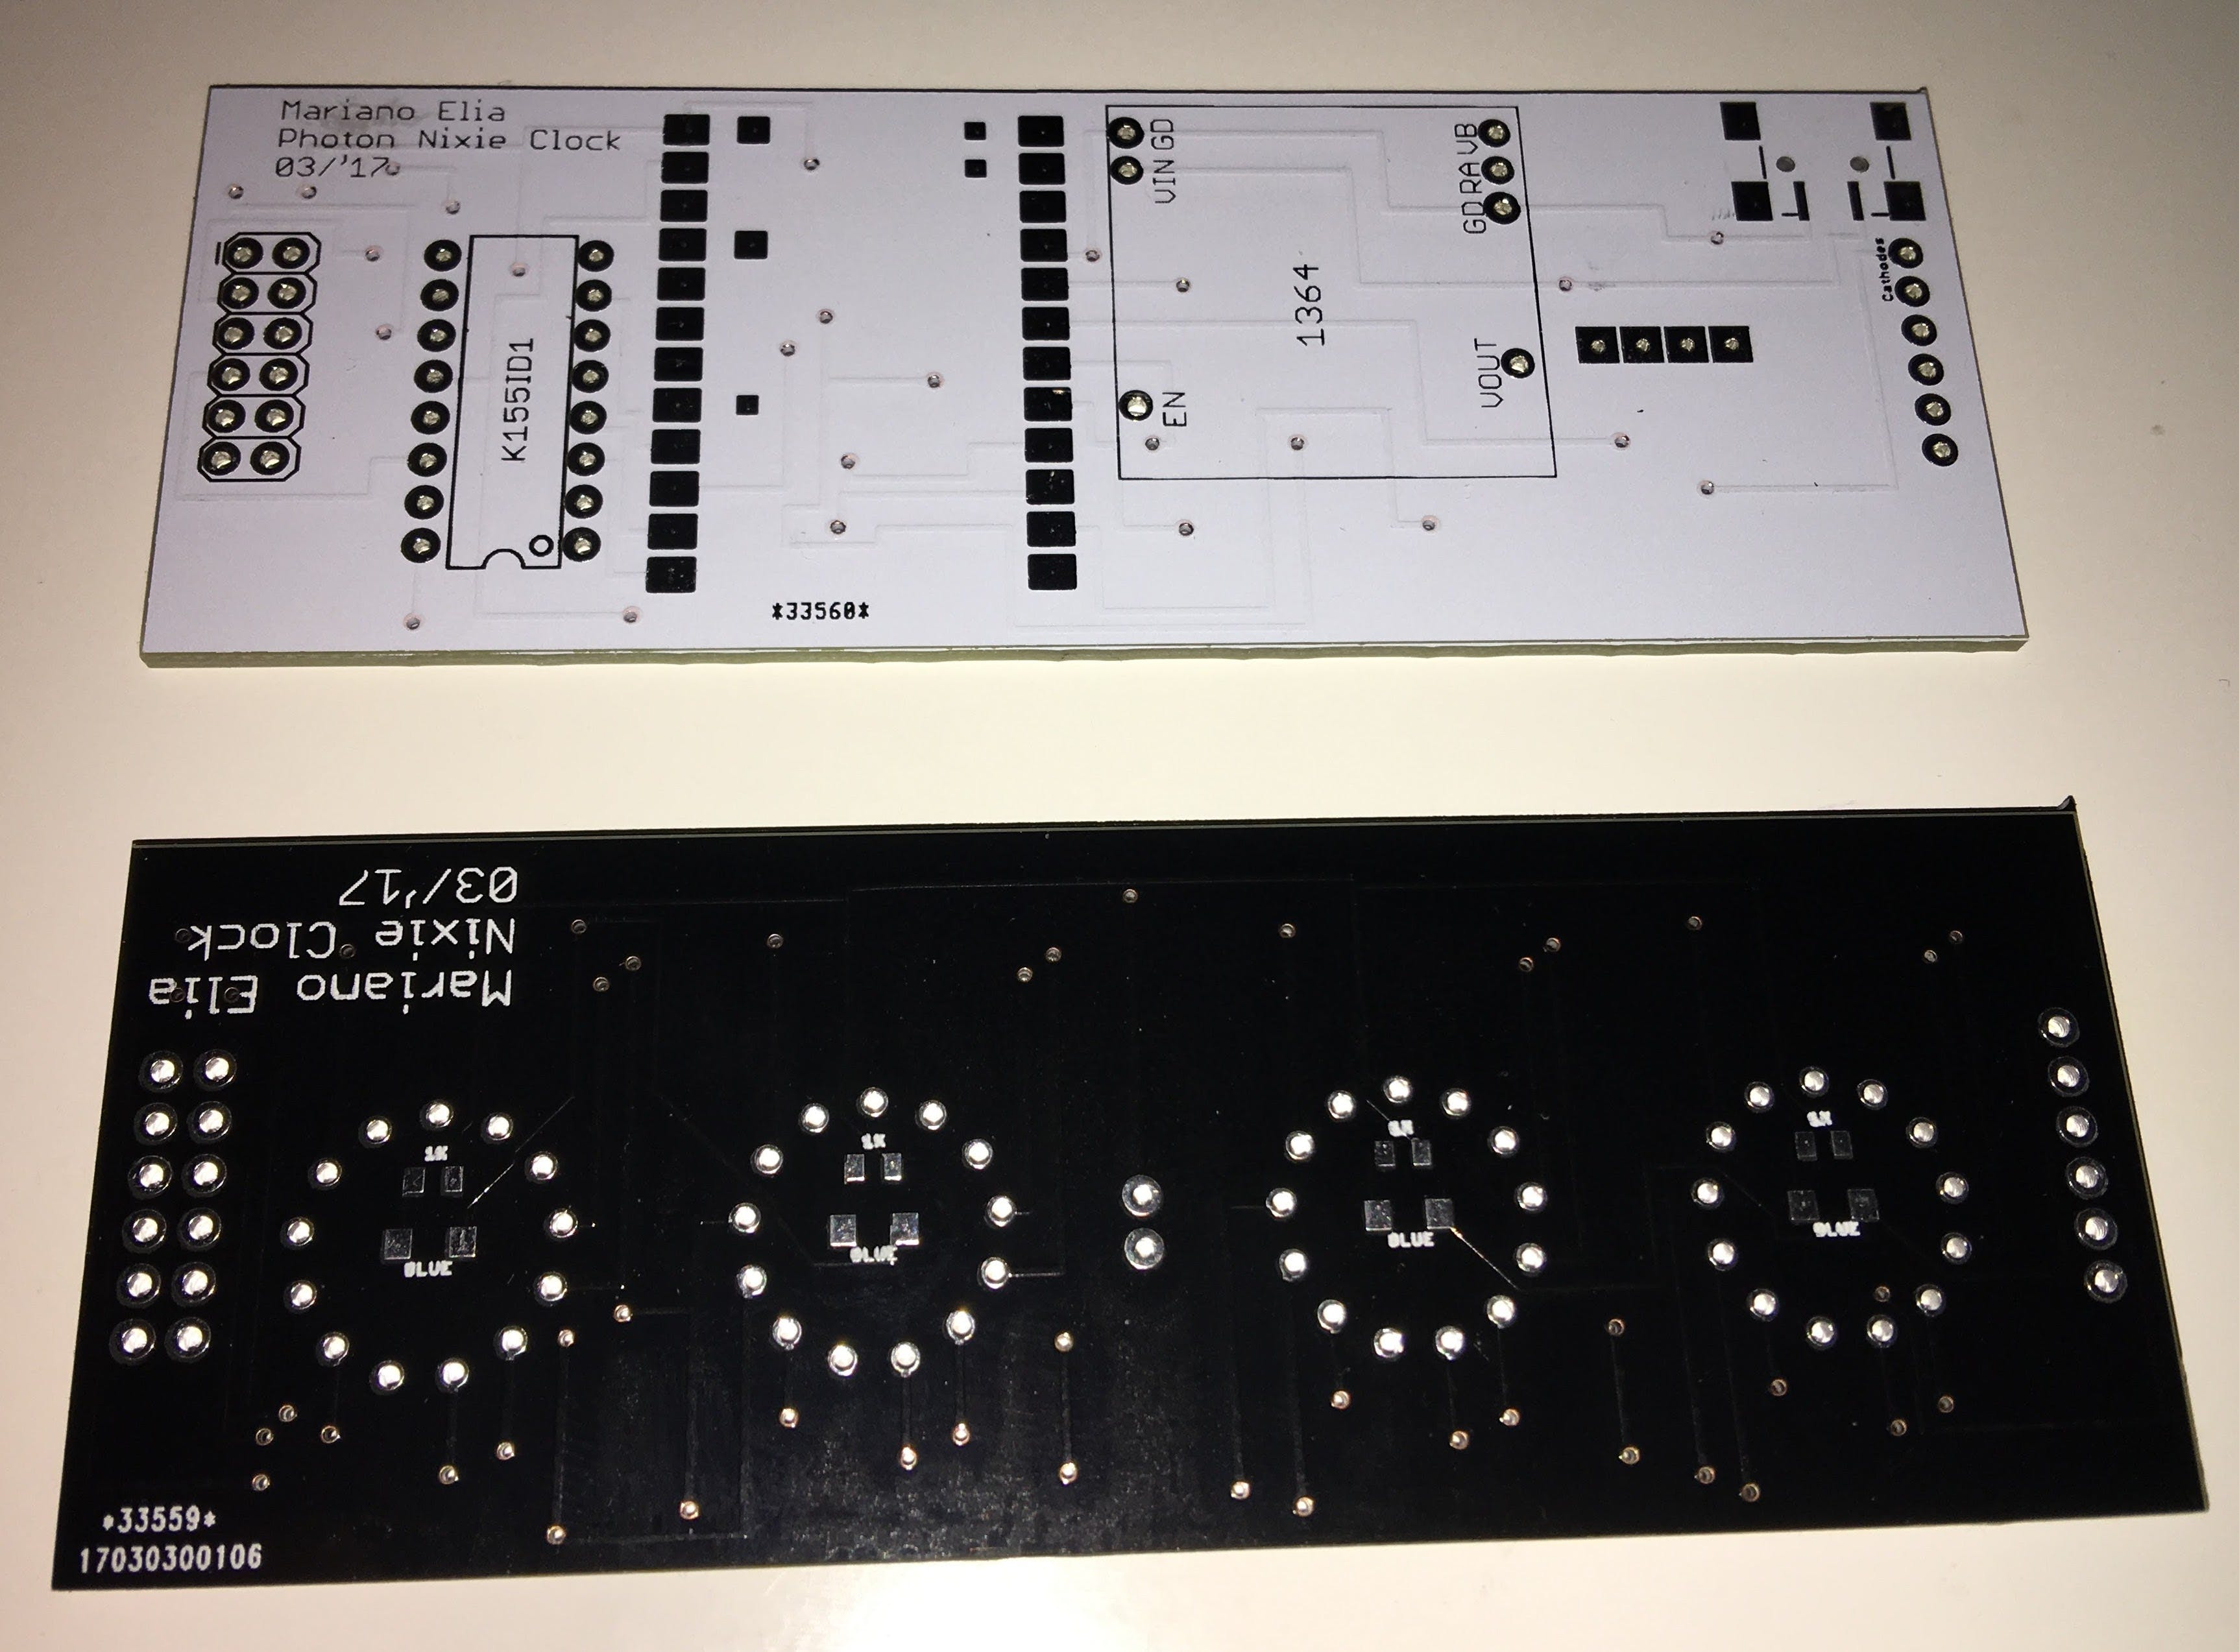 Unpopulated PCB Top